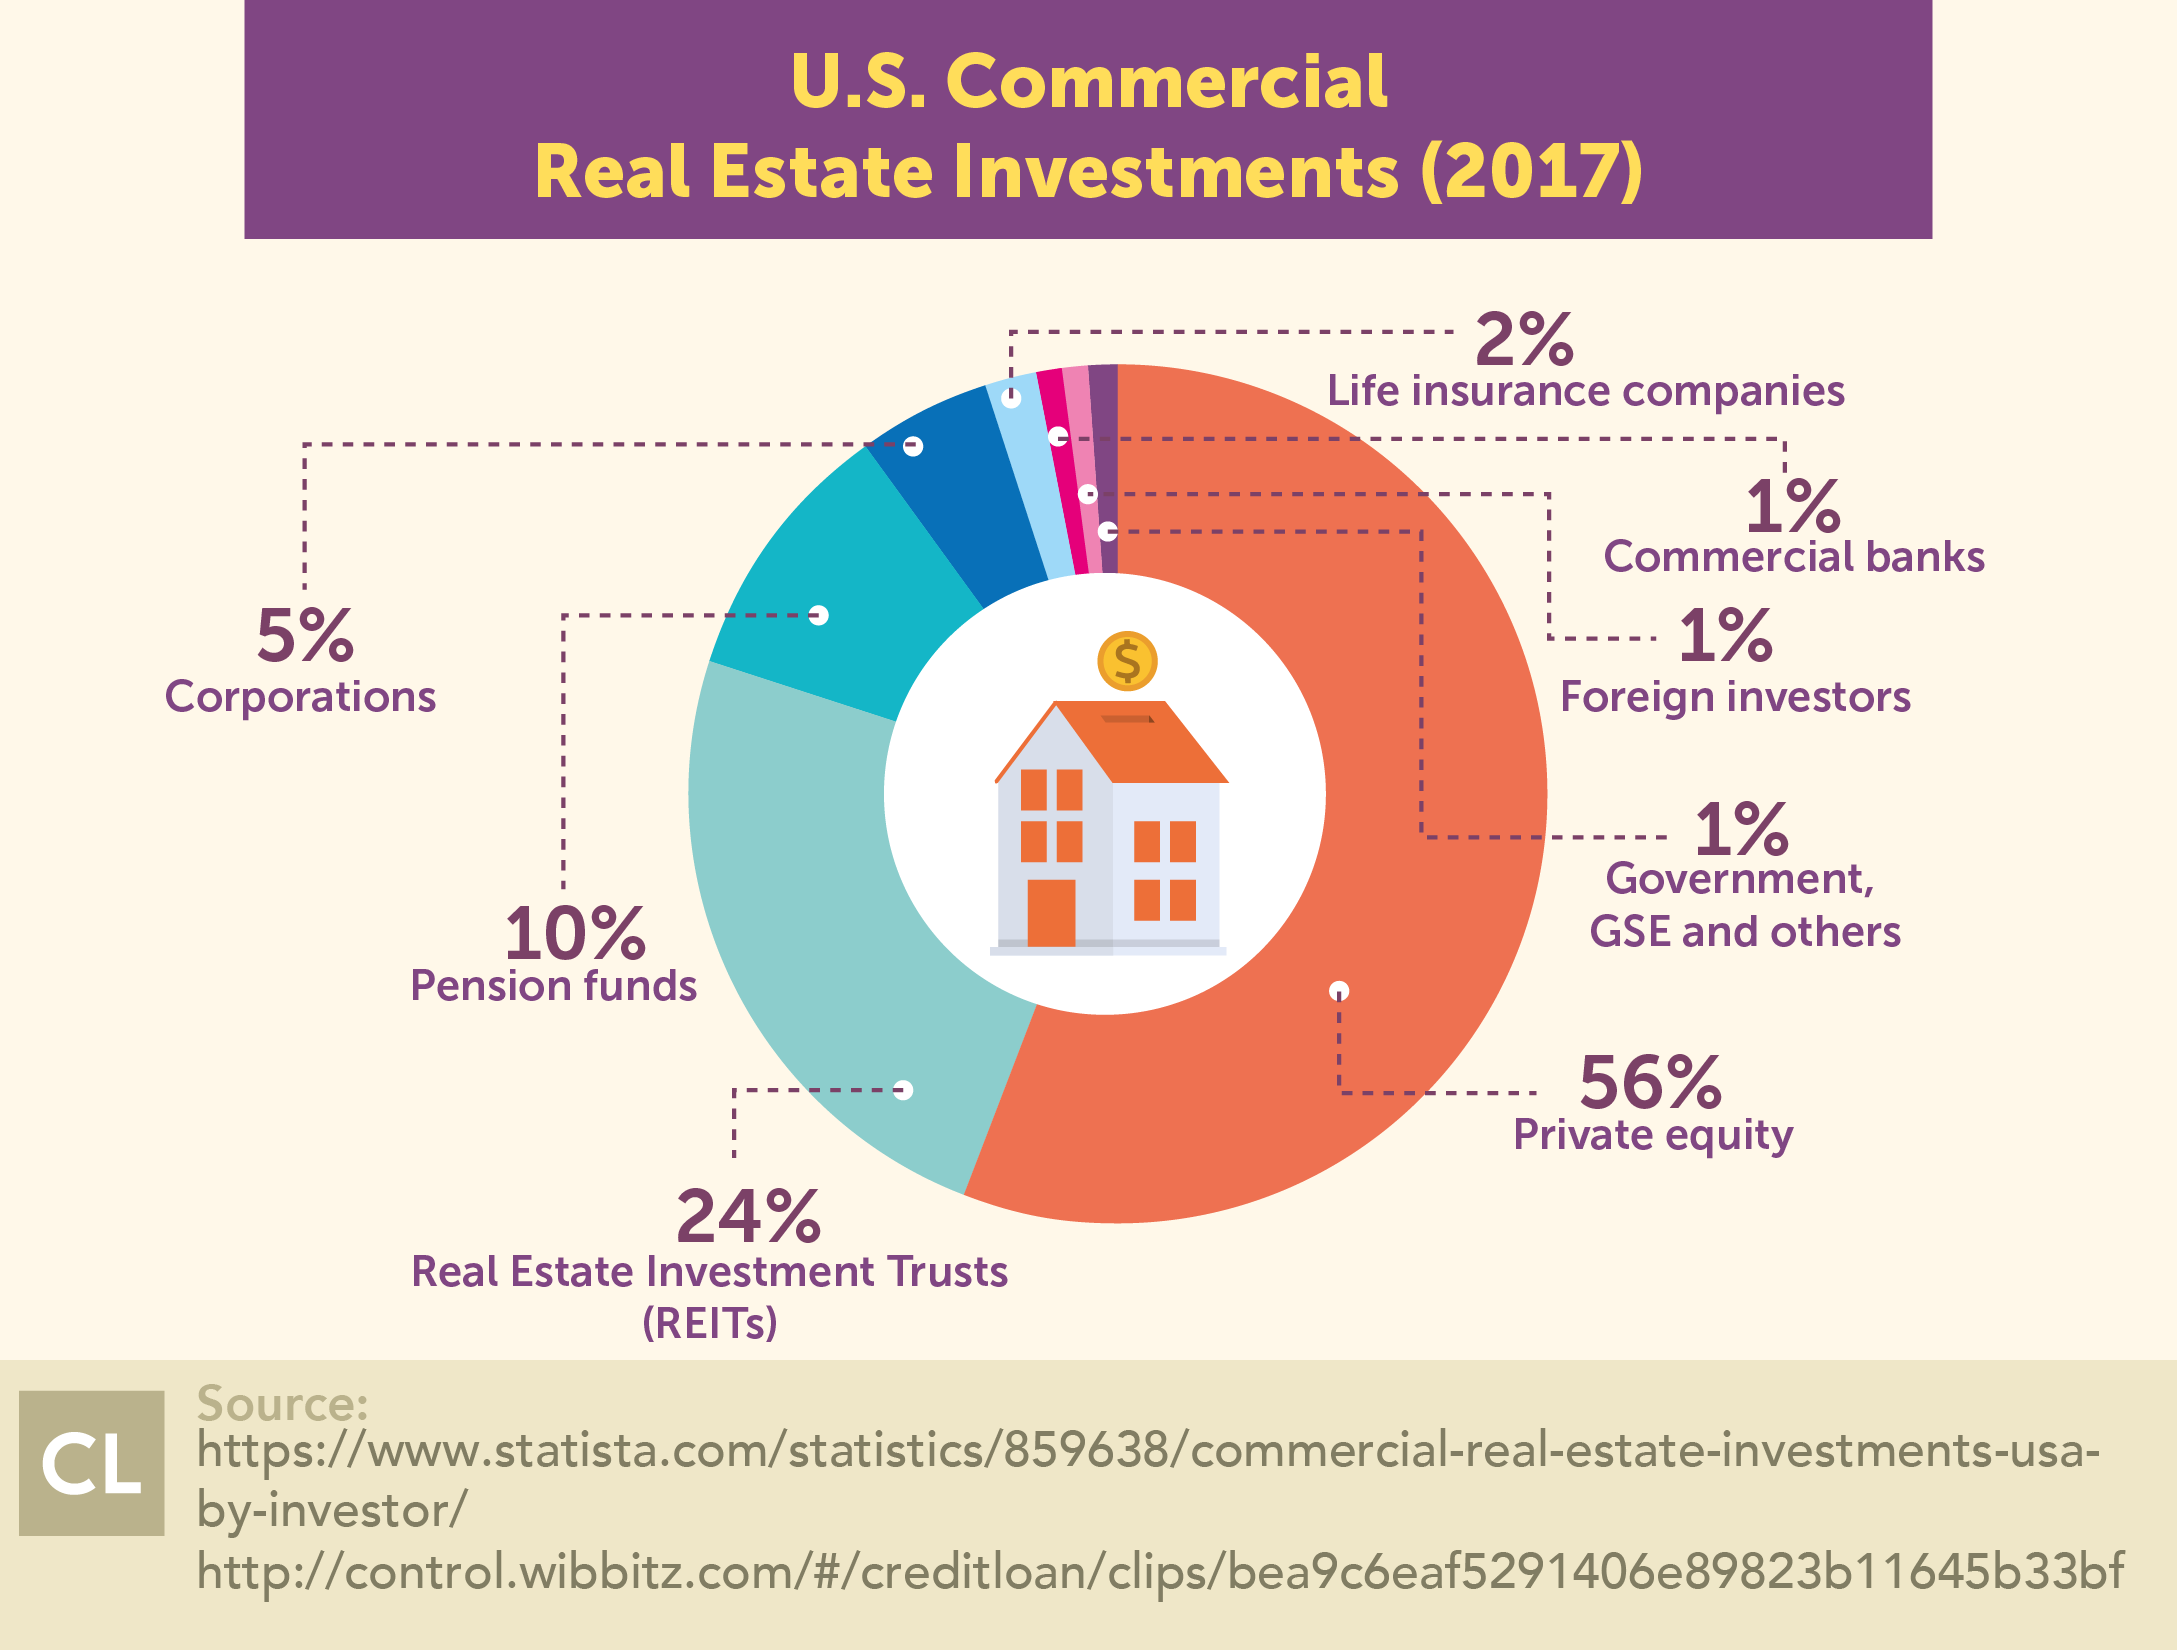 2017 U.S. Commercial Real Estate Investments